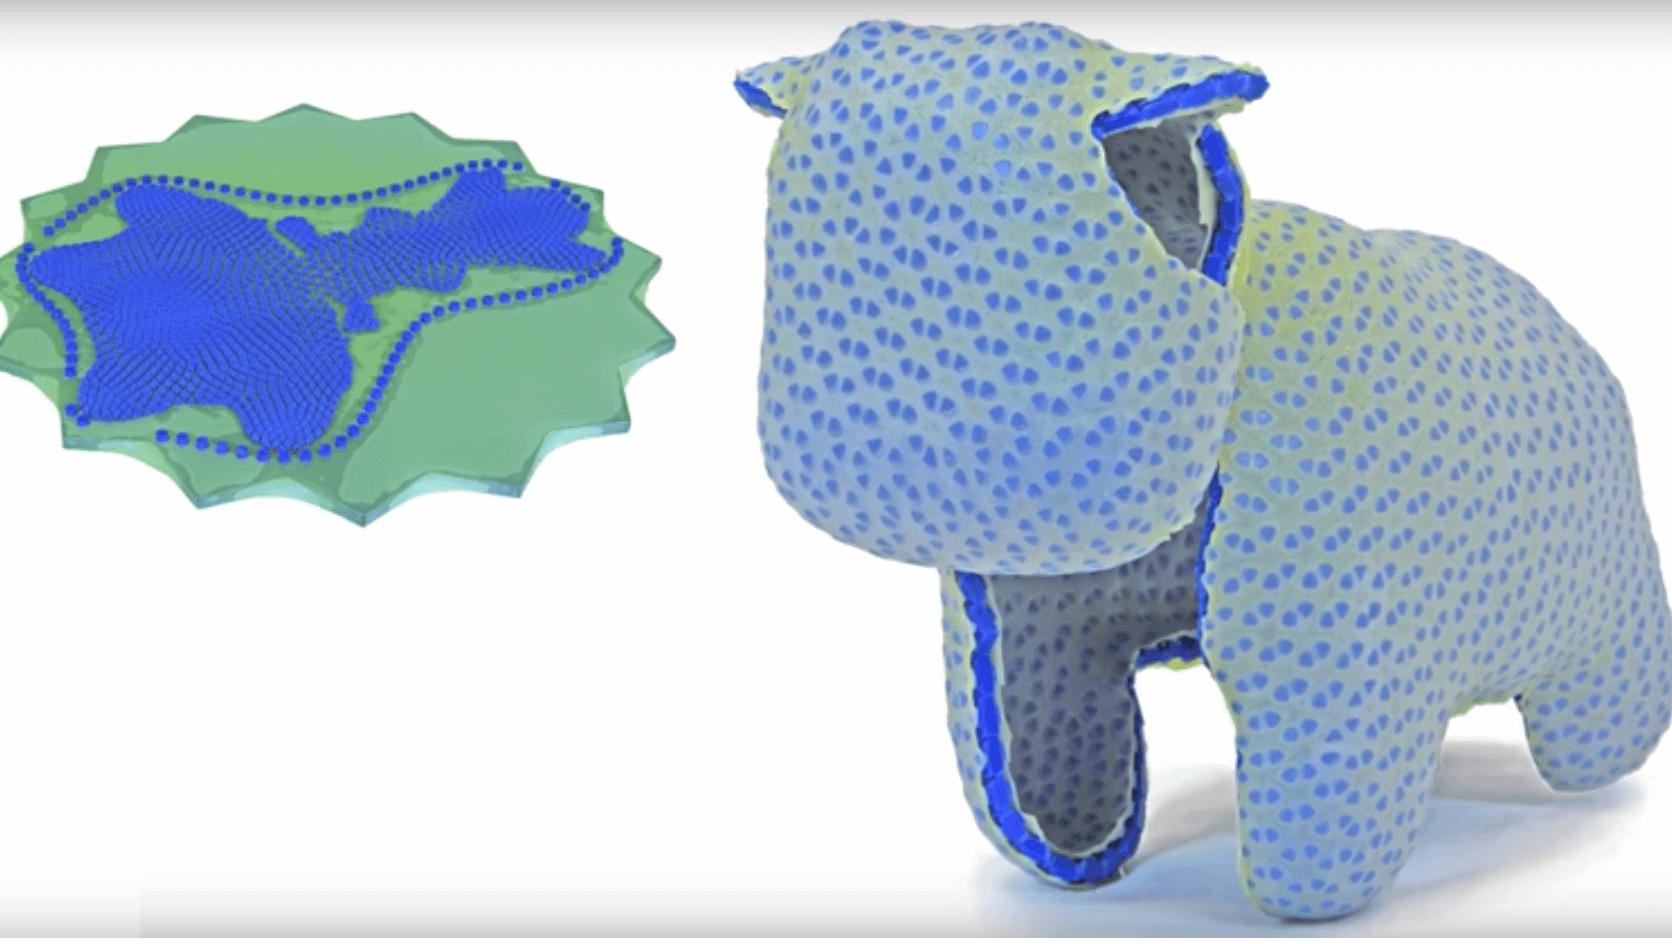 """CurveUps"" Are Flat Printed Objects That Transform Into 3D Shapes 